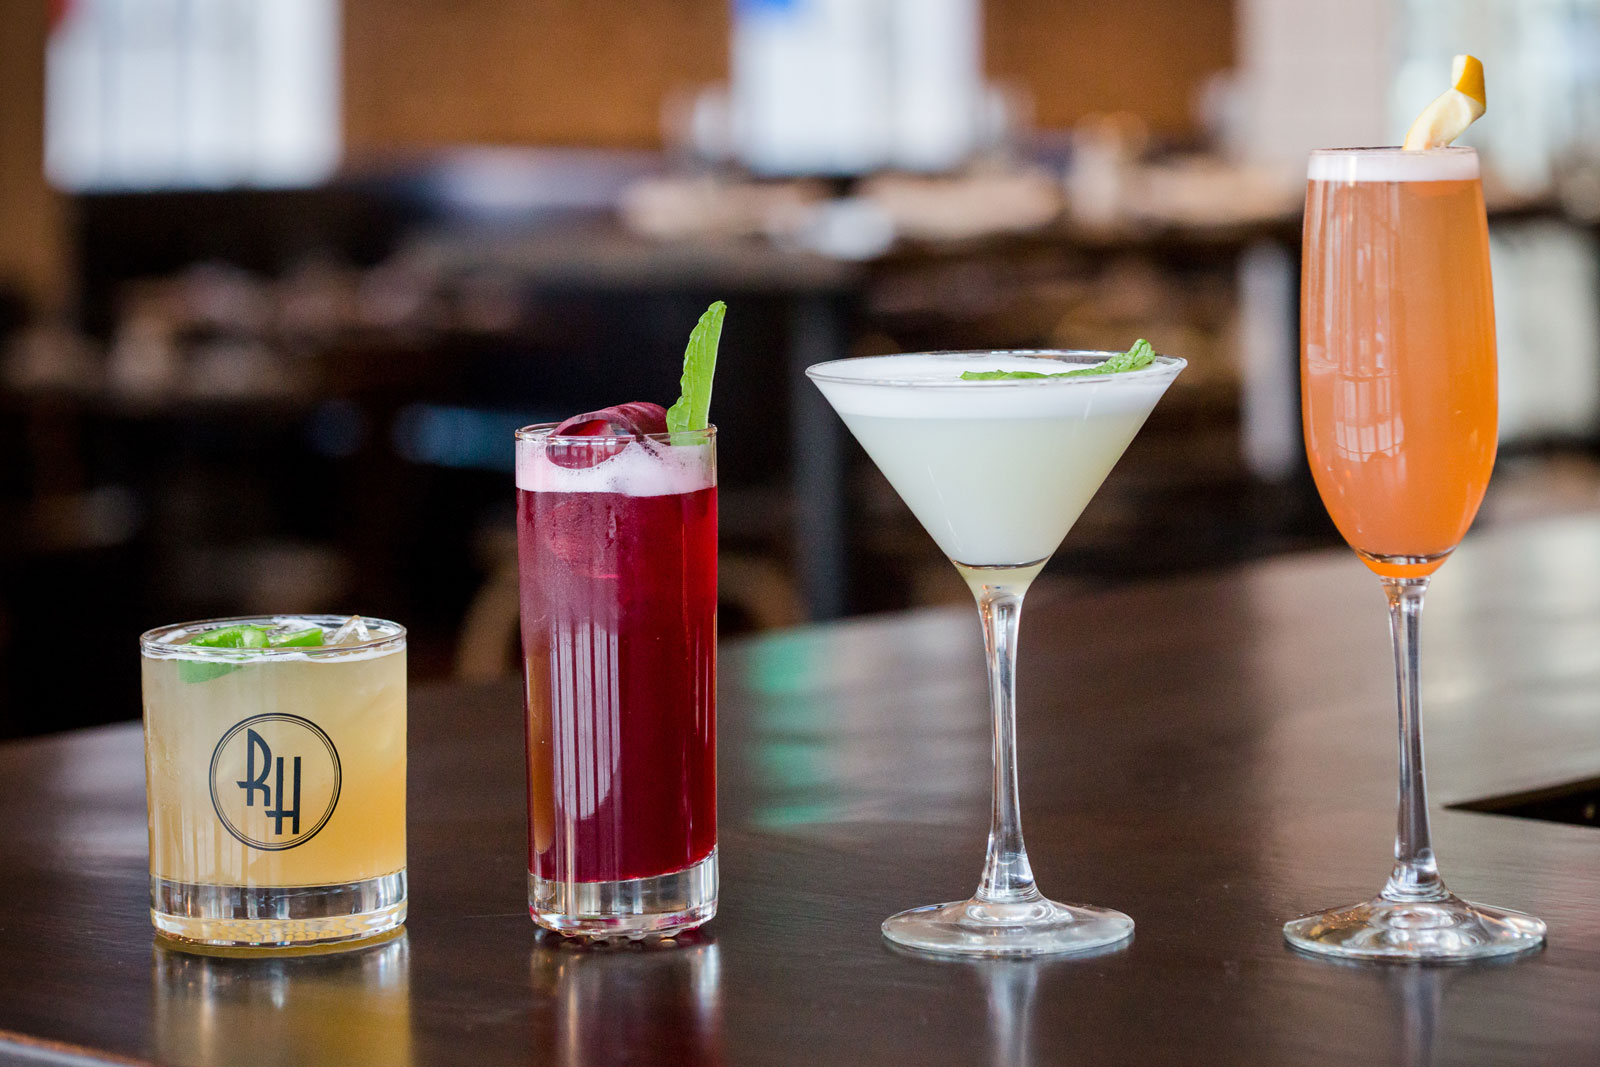 Wide variety of drinks from Row House in Harlem, NY